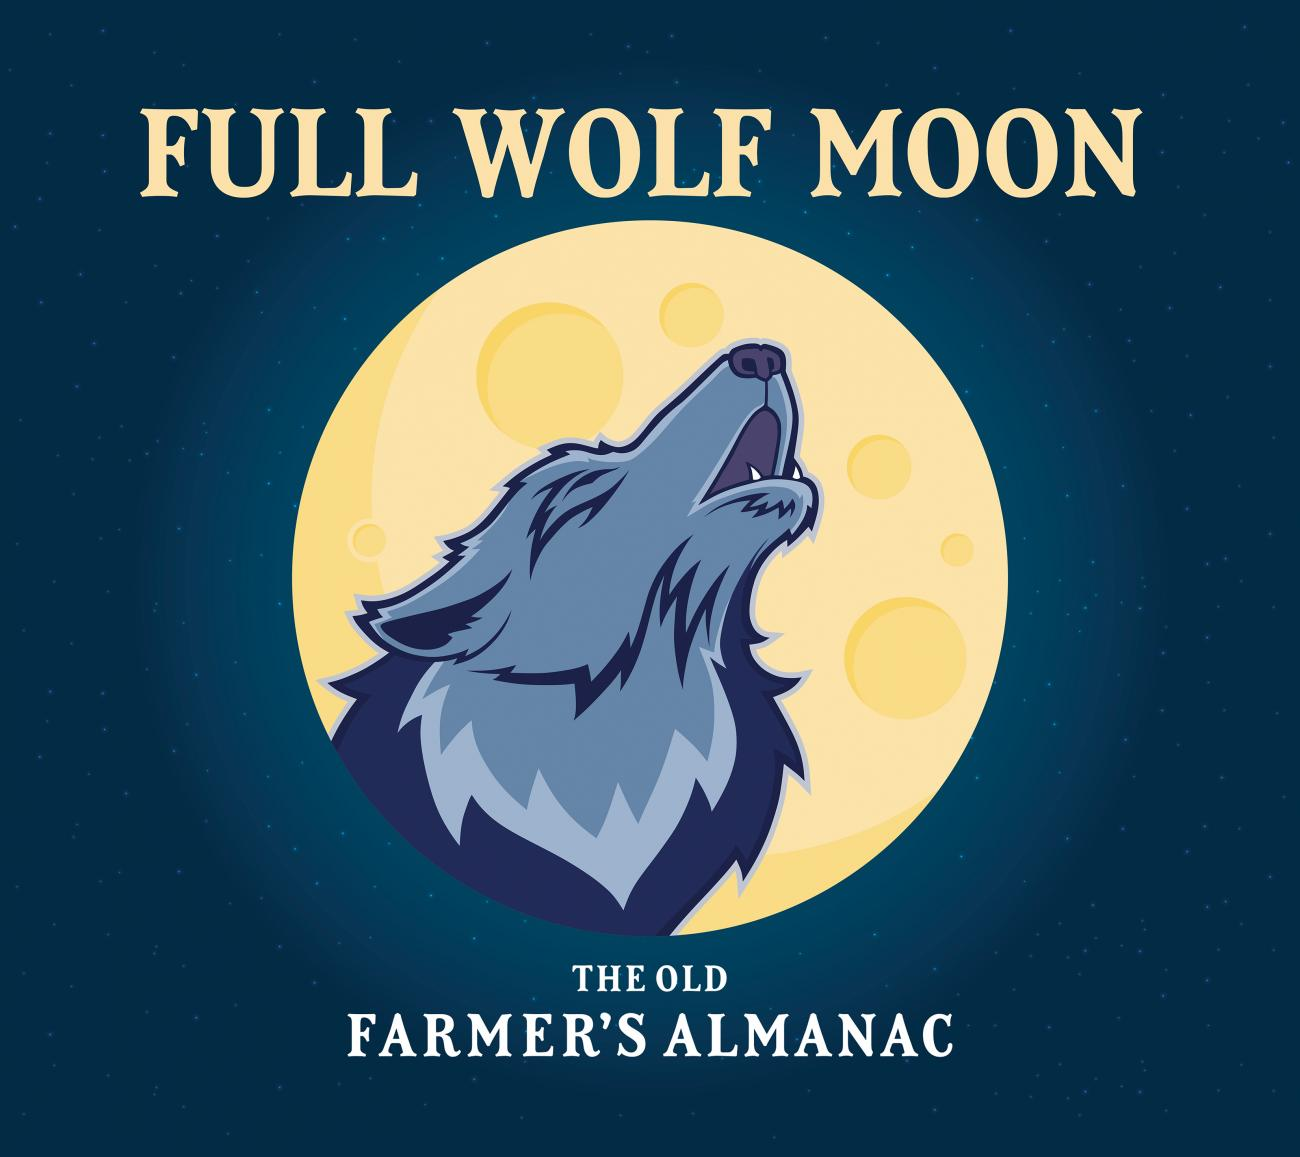 The Full Wolf Moon